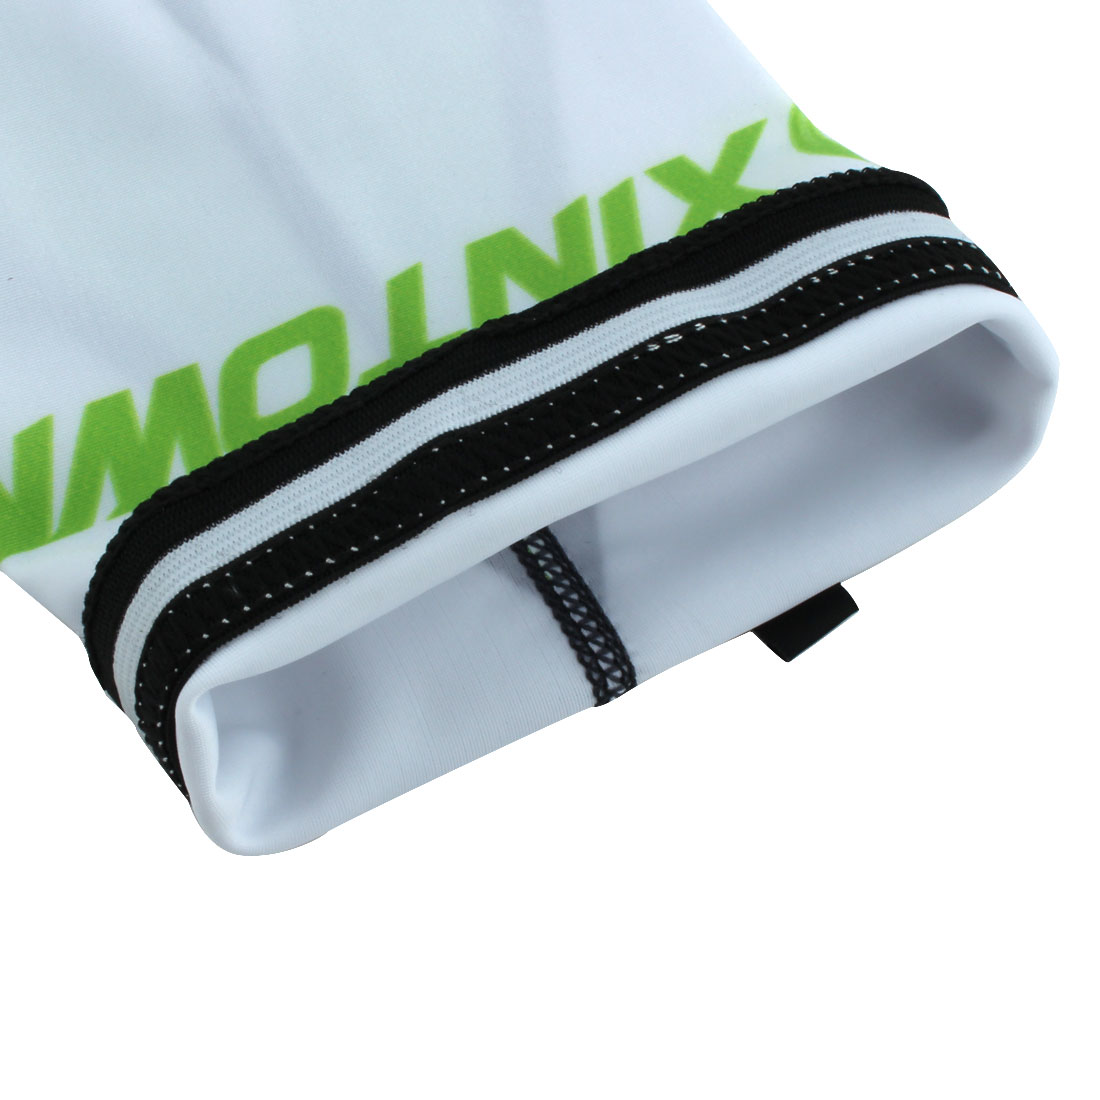 XINTOWN Authorized Cycling Wrap Cooler Band Arm Sleeves Support Protector M Pair - image 3 of 5